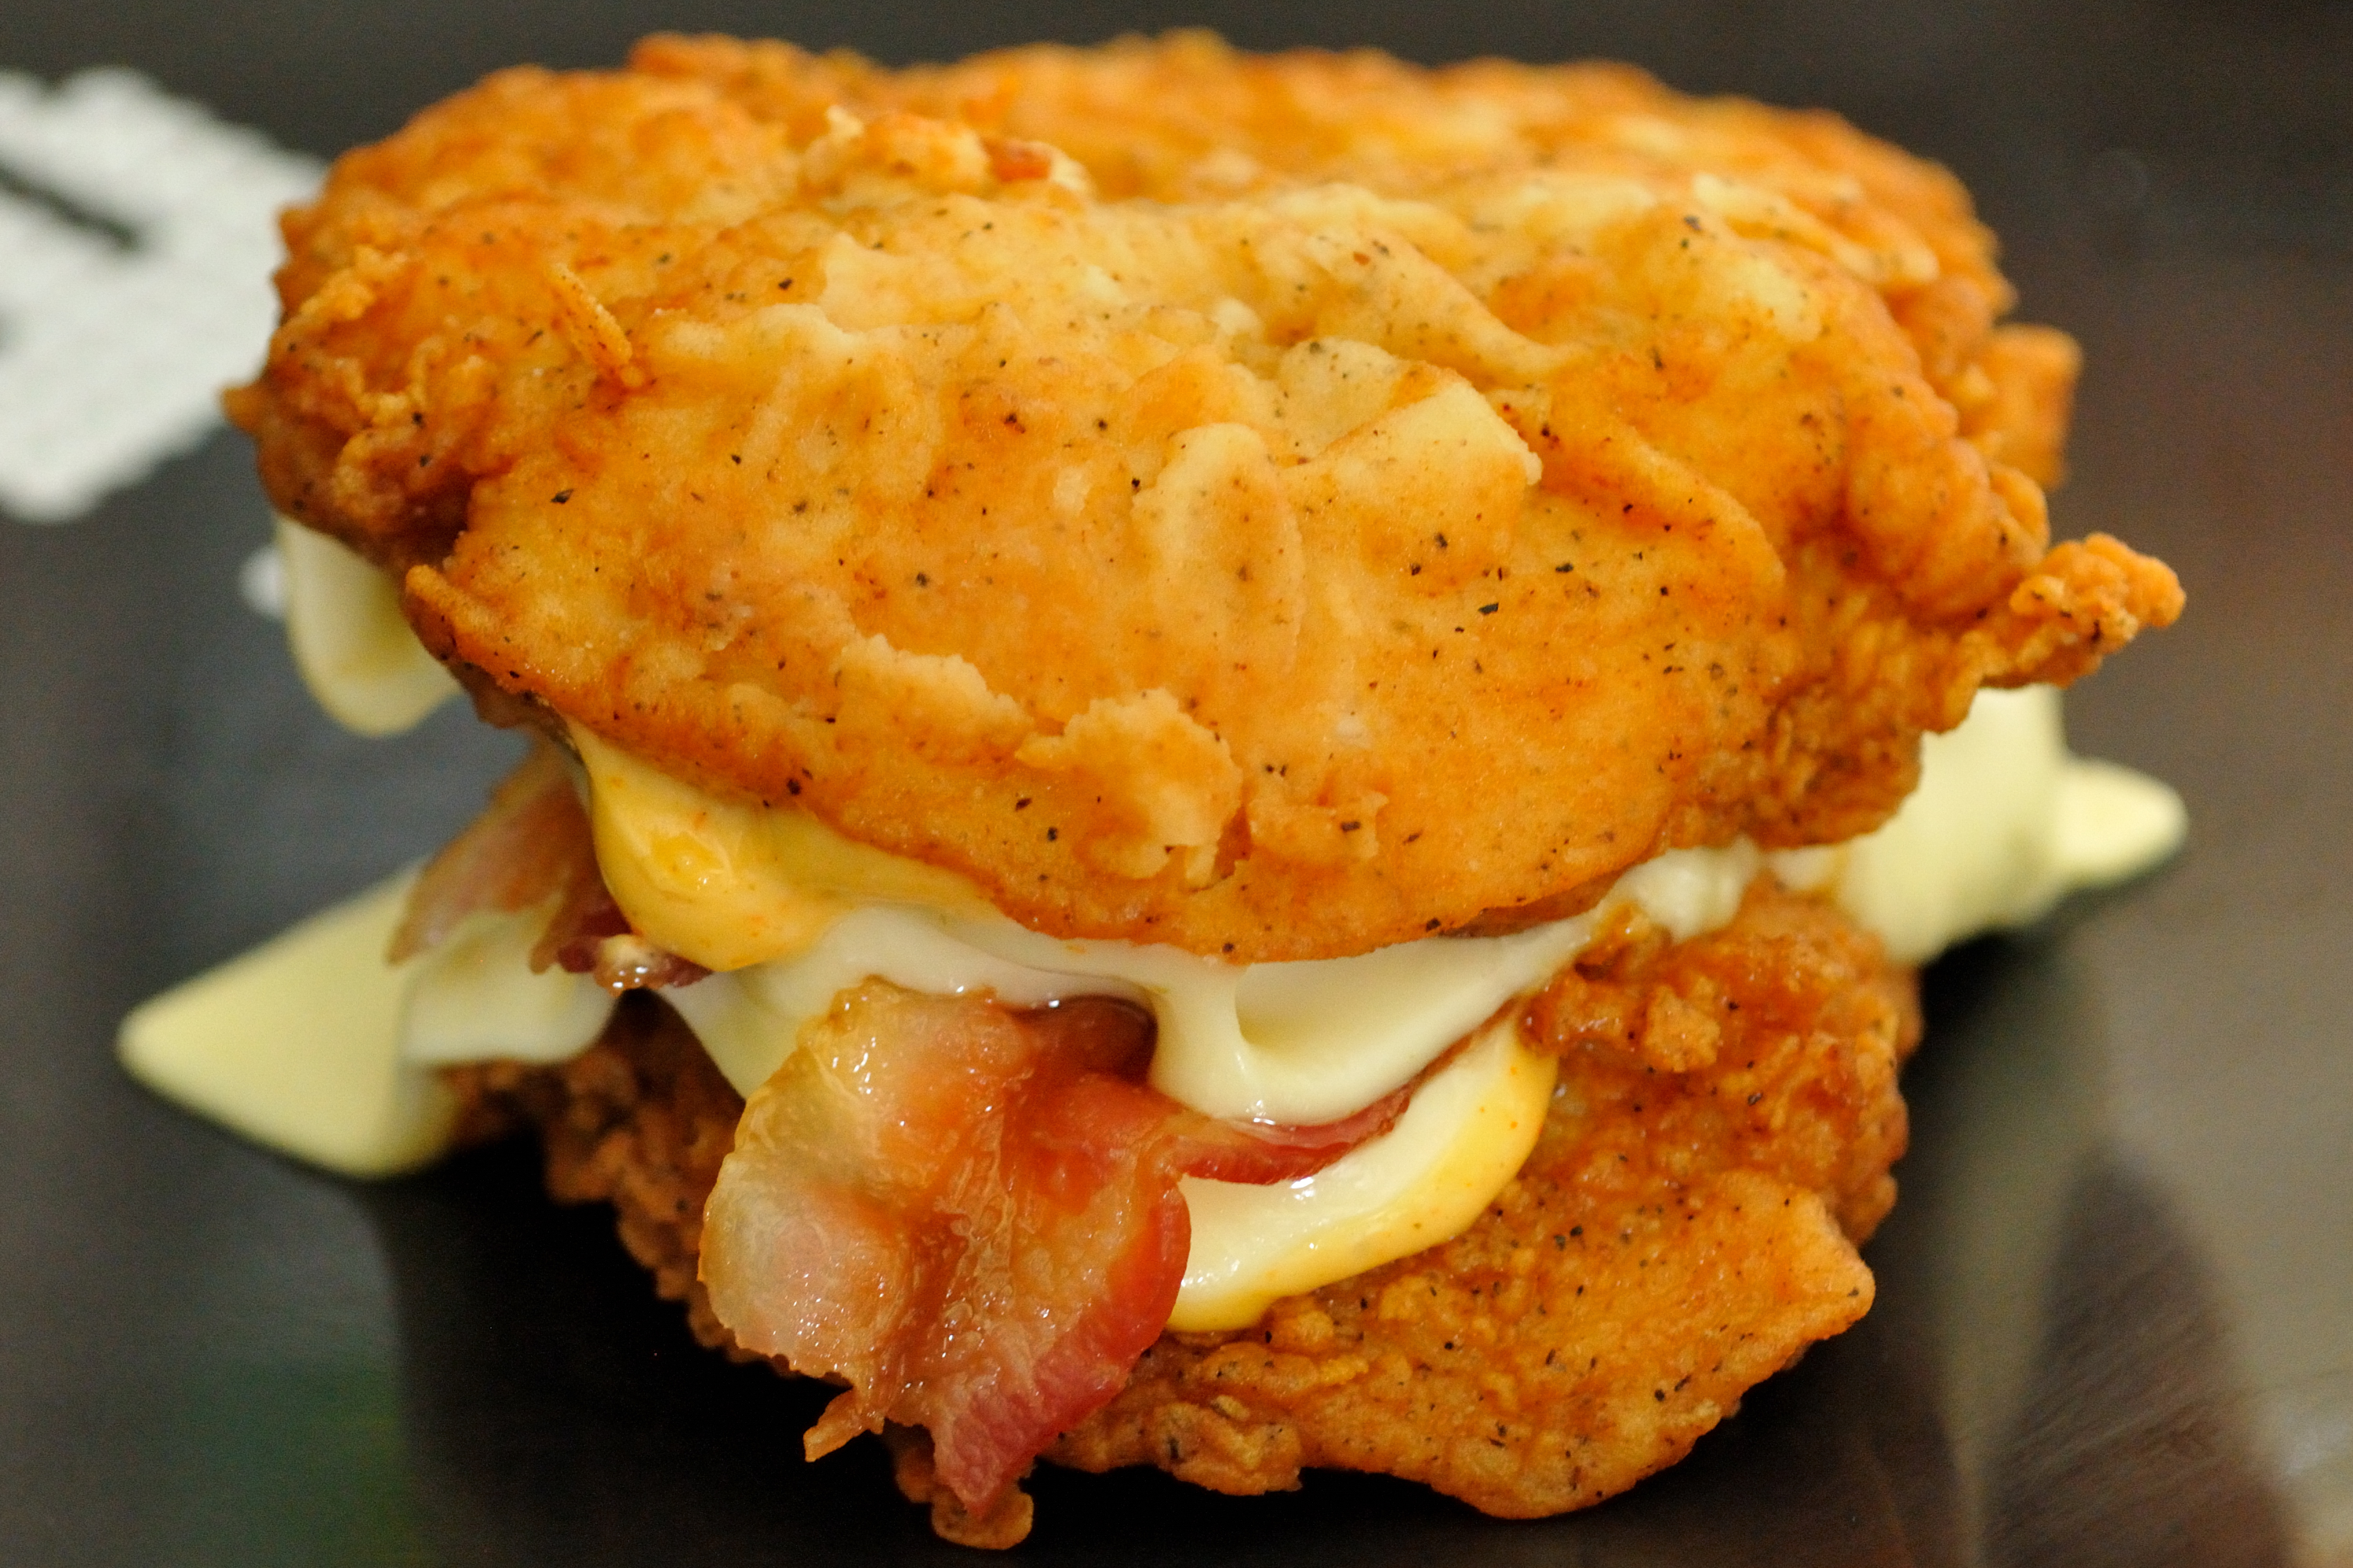 The KFC Double Down